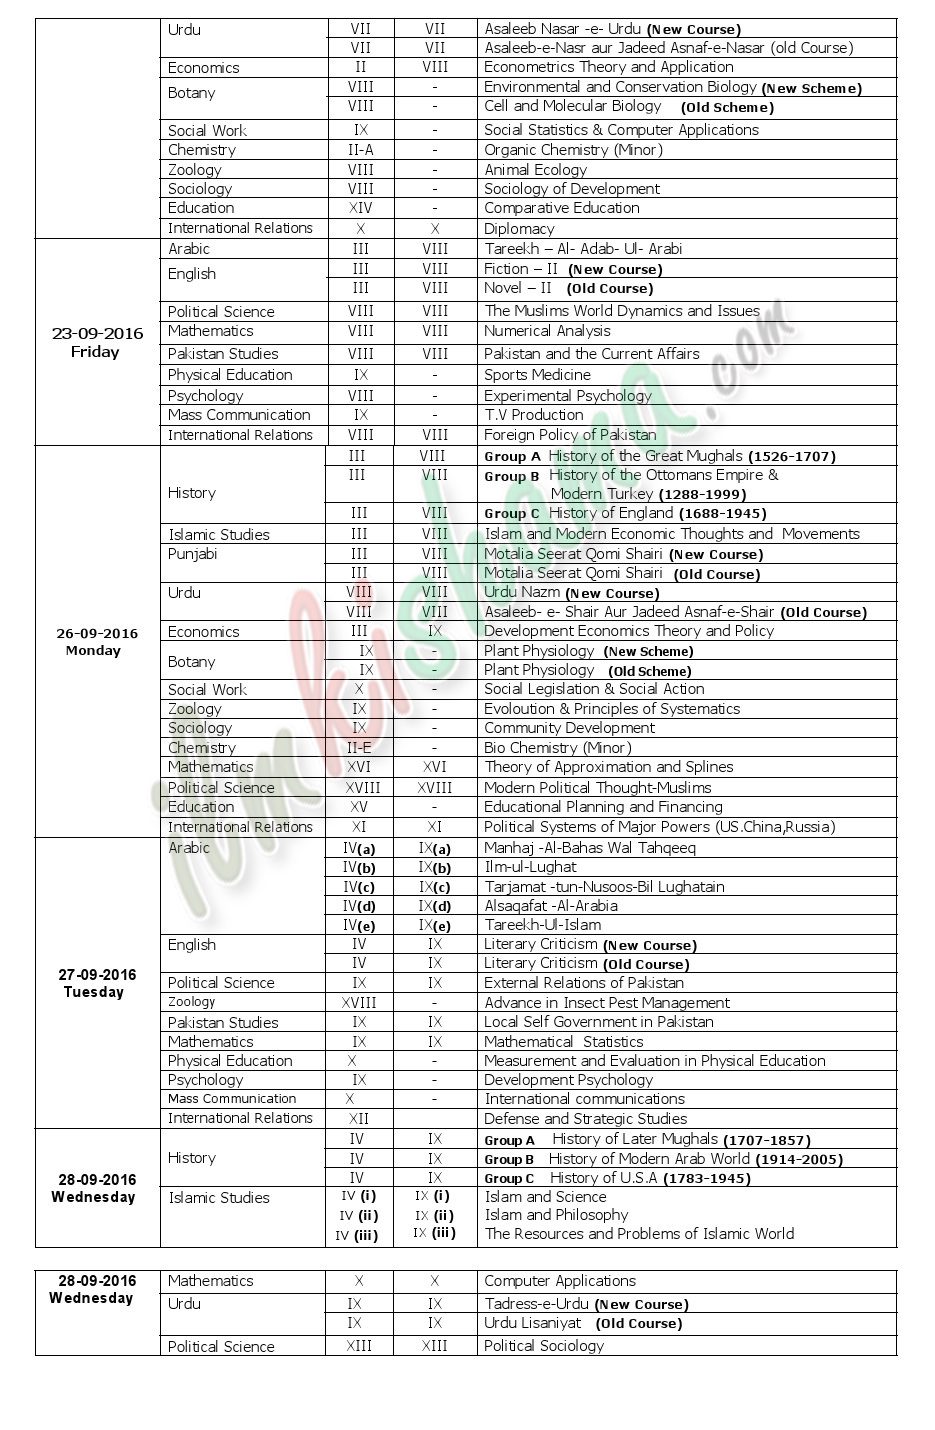 Date Sheet M.AM.Sc Part-II saragodha university 2016 2